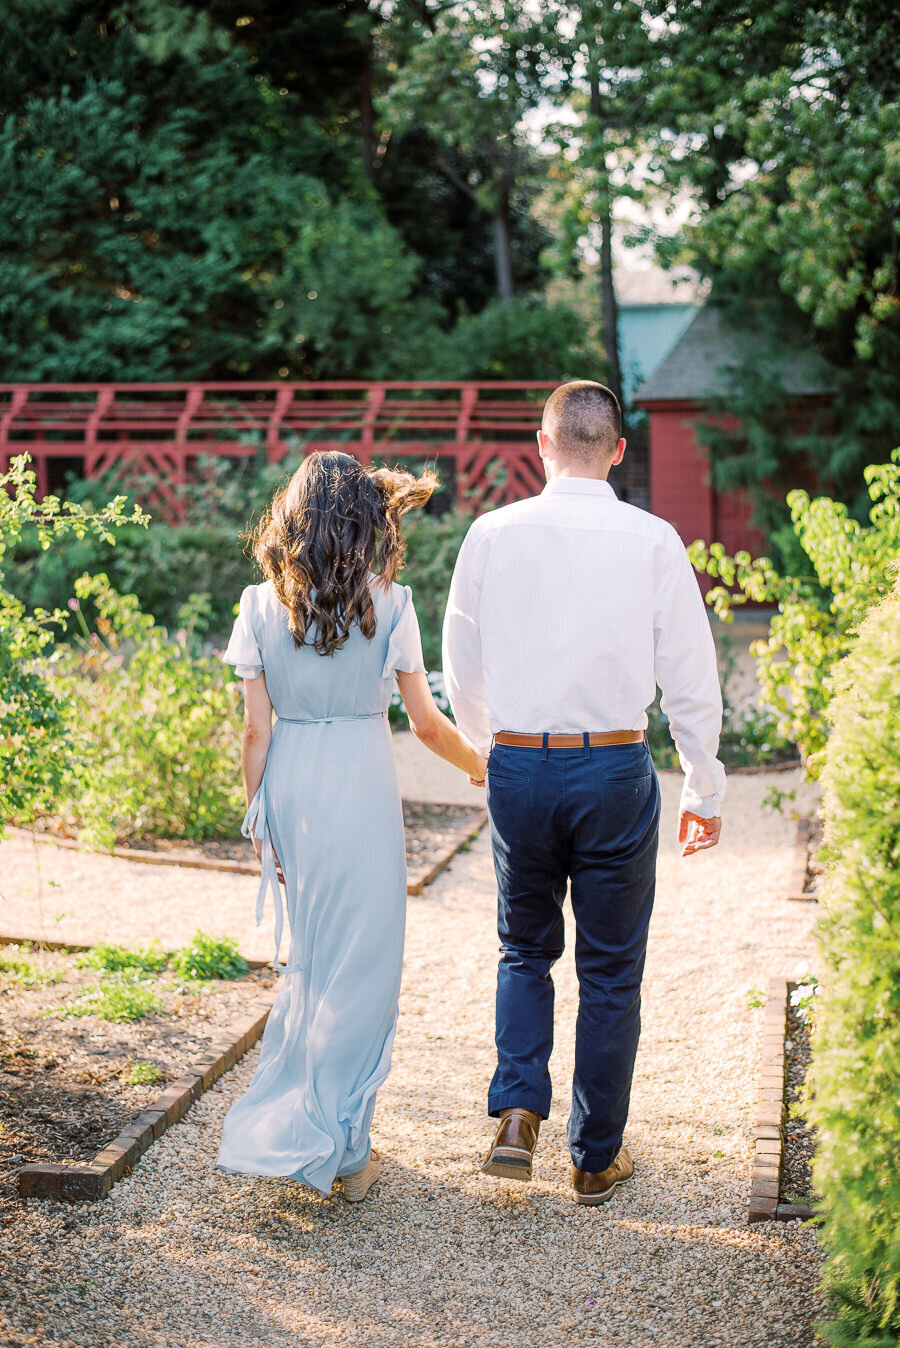 William_Paca_Gardens_Engagement_Session_Megan_Harris_Photography-11